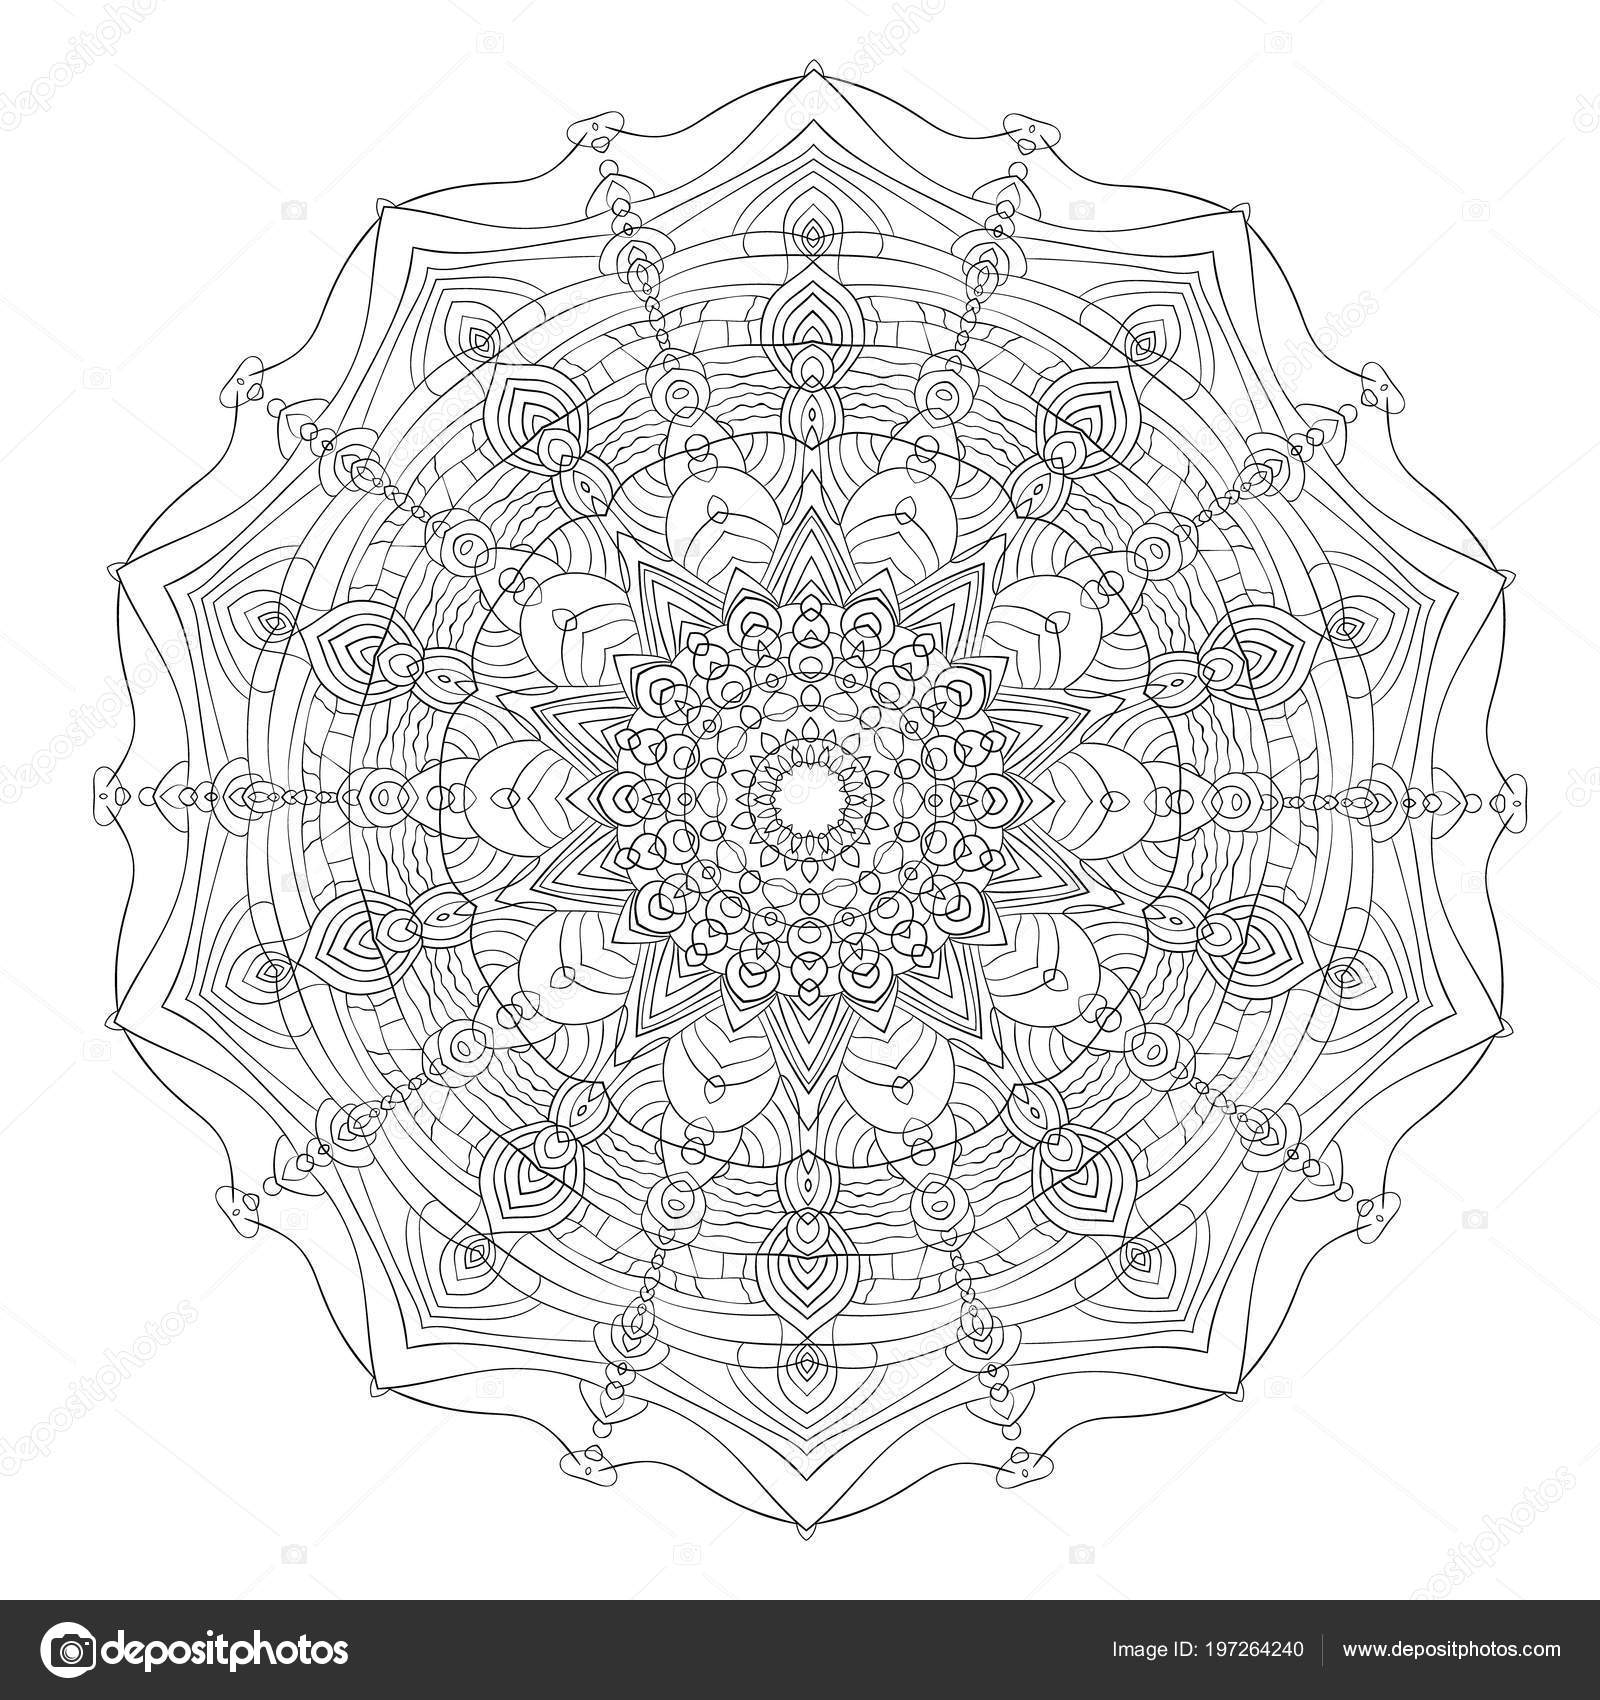 depositphotos stock illustration black white mandala vintage decorative